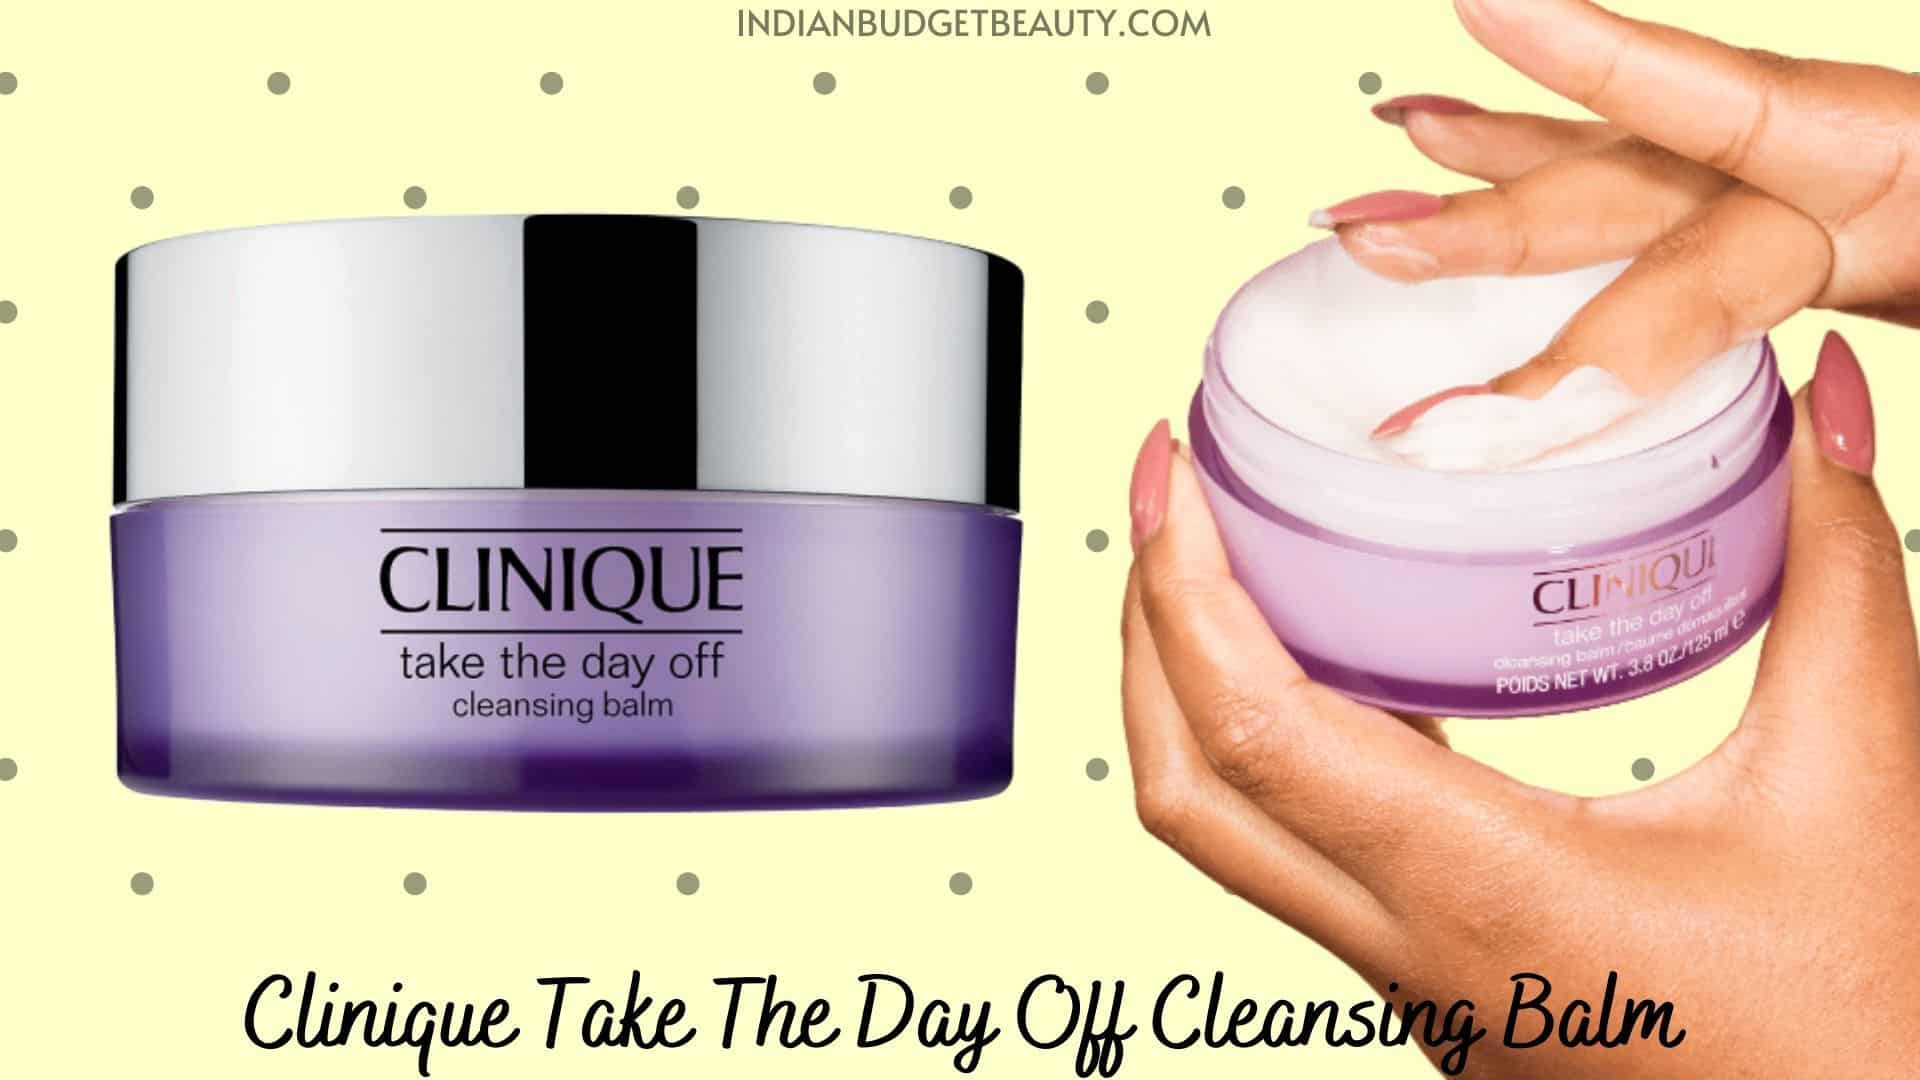 Clinique Take The Day Off Cleansing Balm review | best cleansing balm in india